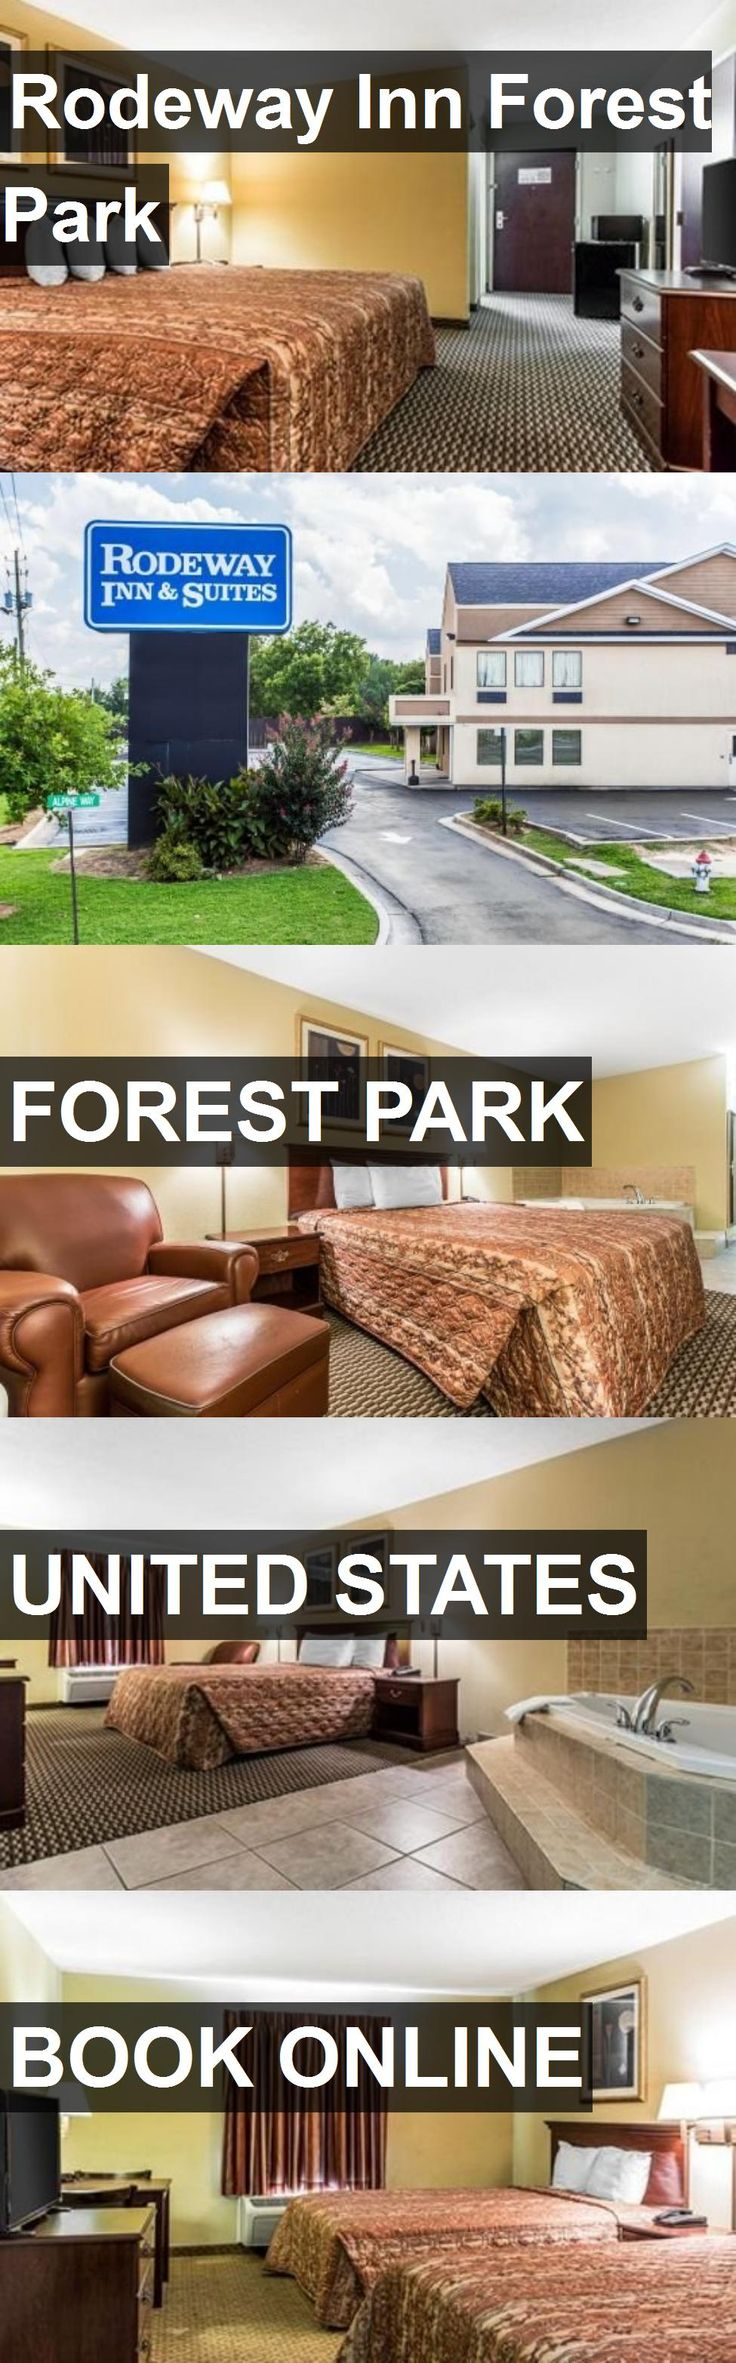 Hotel Rodeway Inn Forest Park in Forest Park, United States. For more information, photos, reviews and best prices please follow the link. #UnitedStates #ForestPark #travel #vacation #hotel